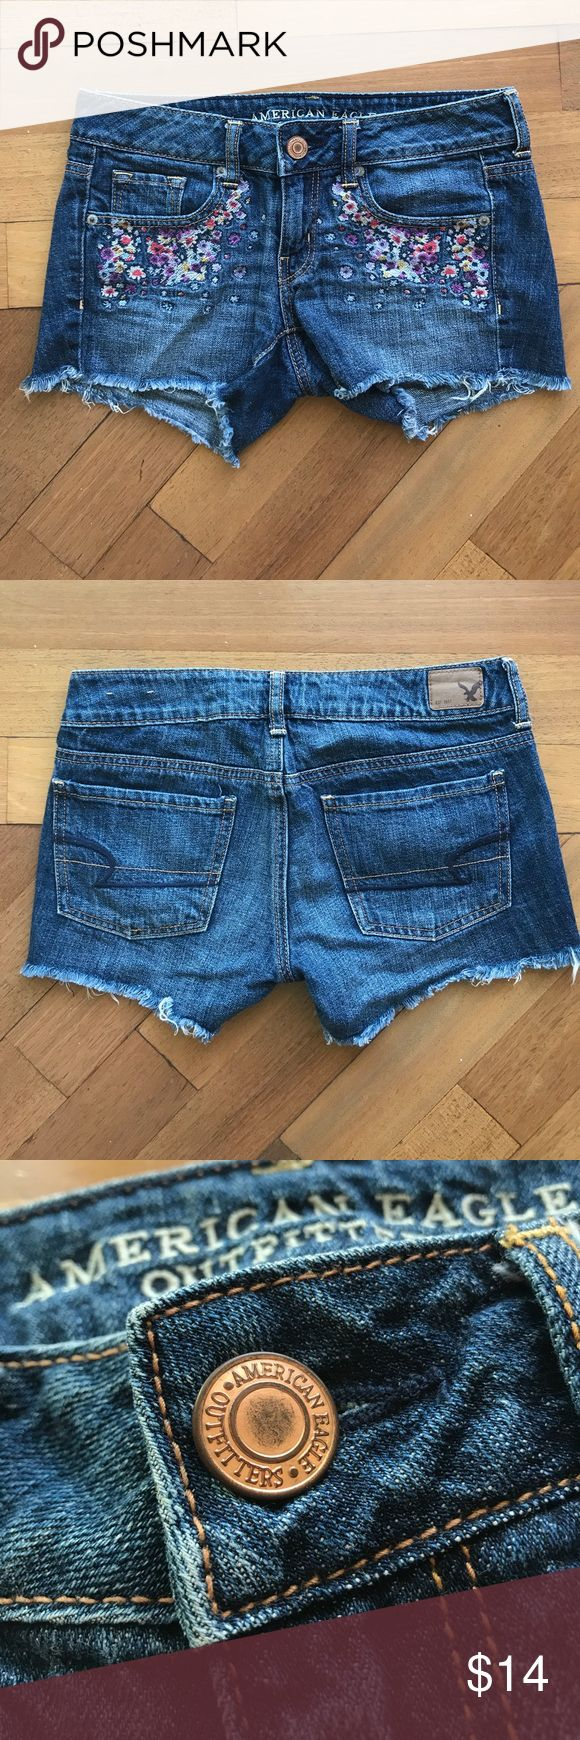 American Eagle jean embroidered shorts American Eagle dark wash jean shorts with floral embroidered front pockets and fringe bottom. Size 2. American Eagle Outfitters Shorts Jean Shorts